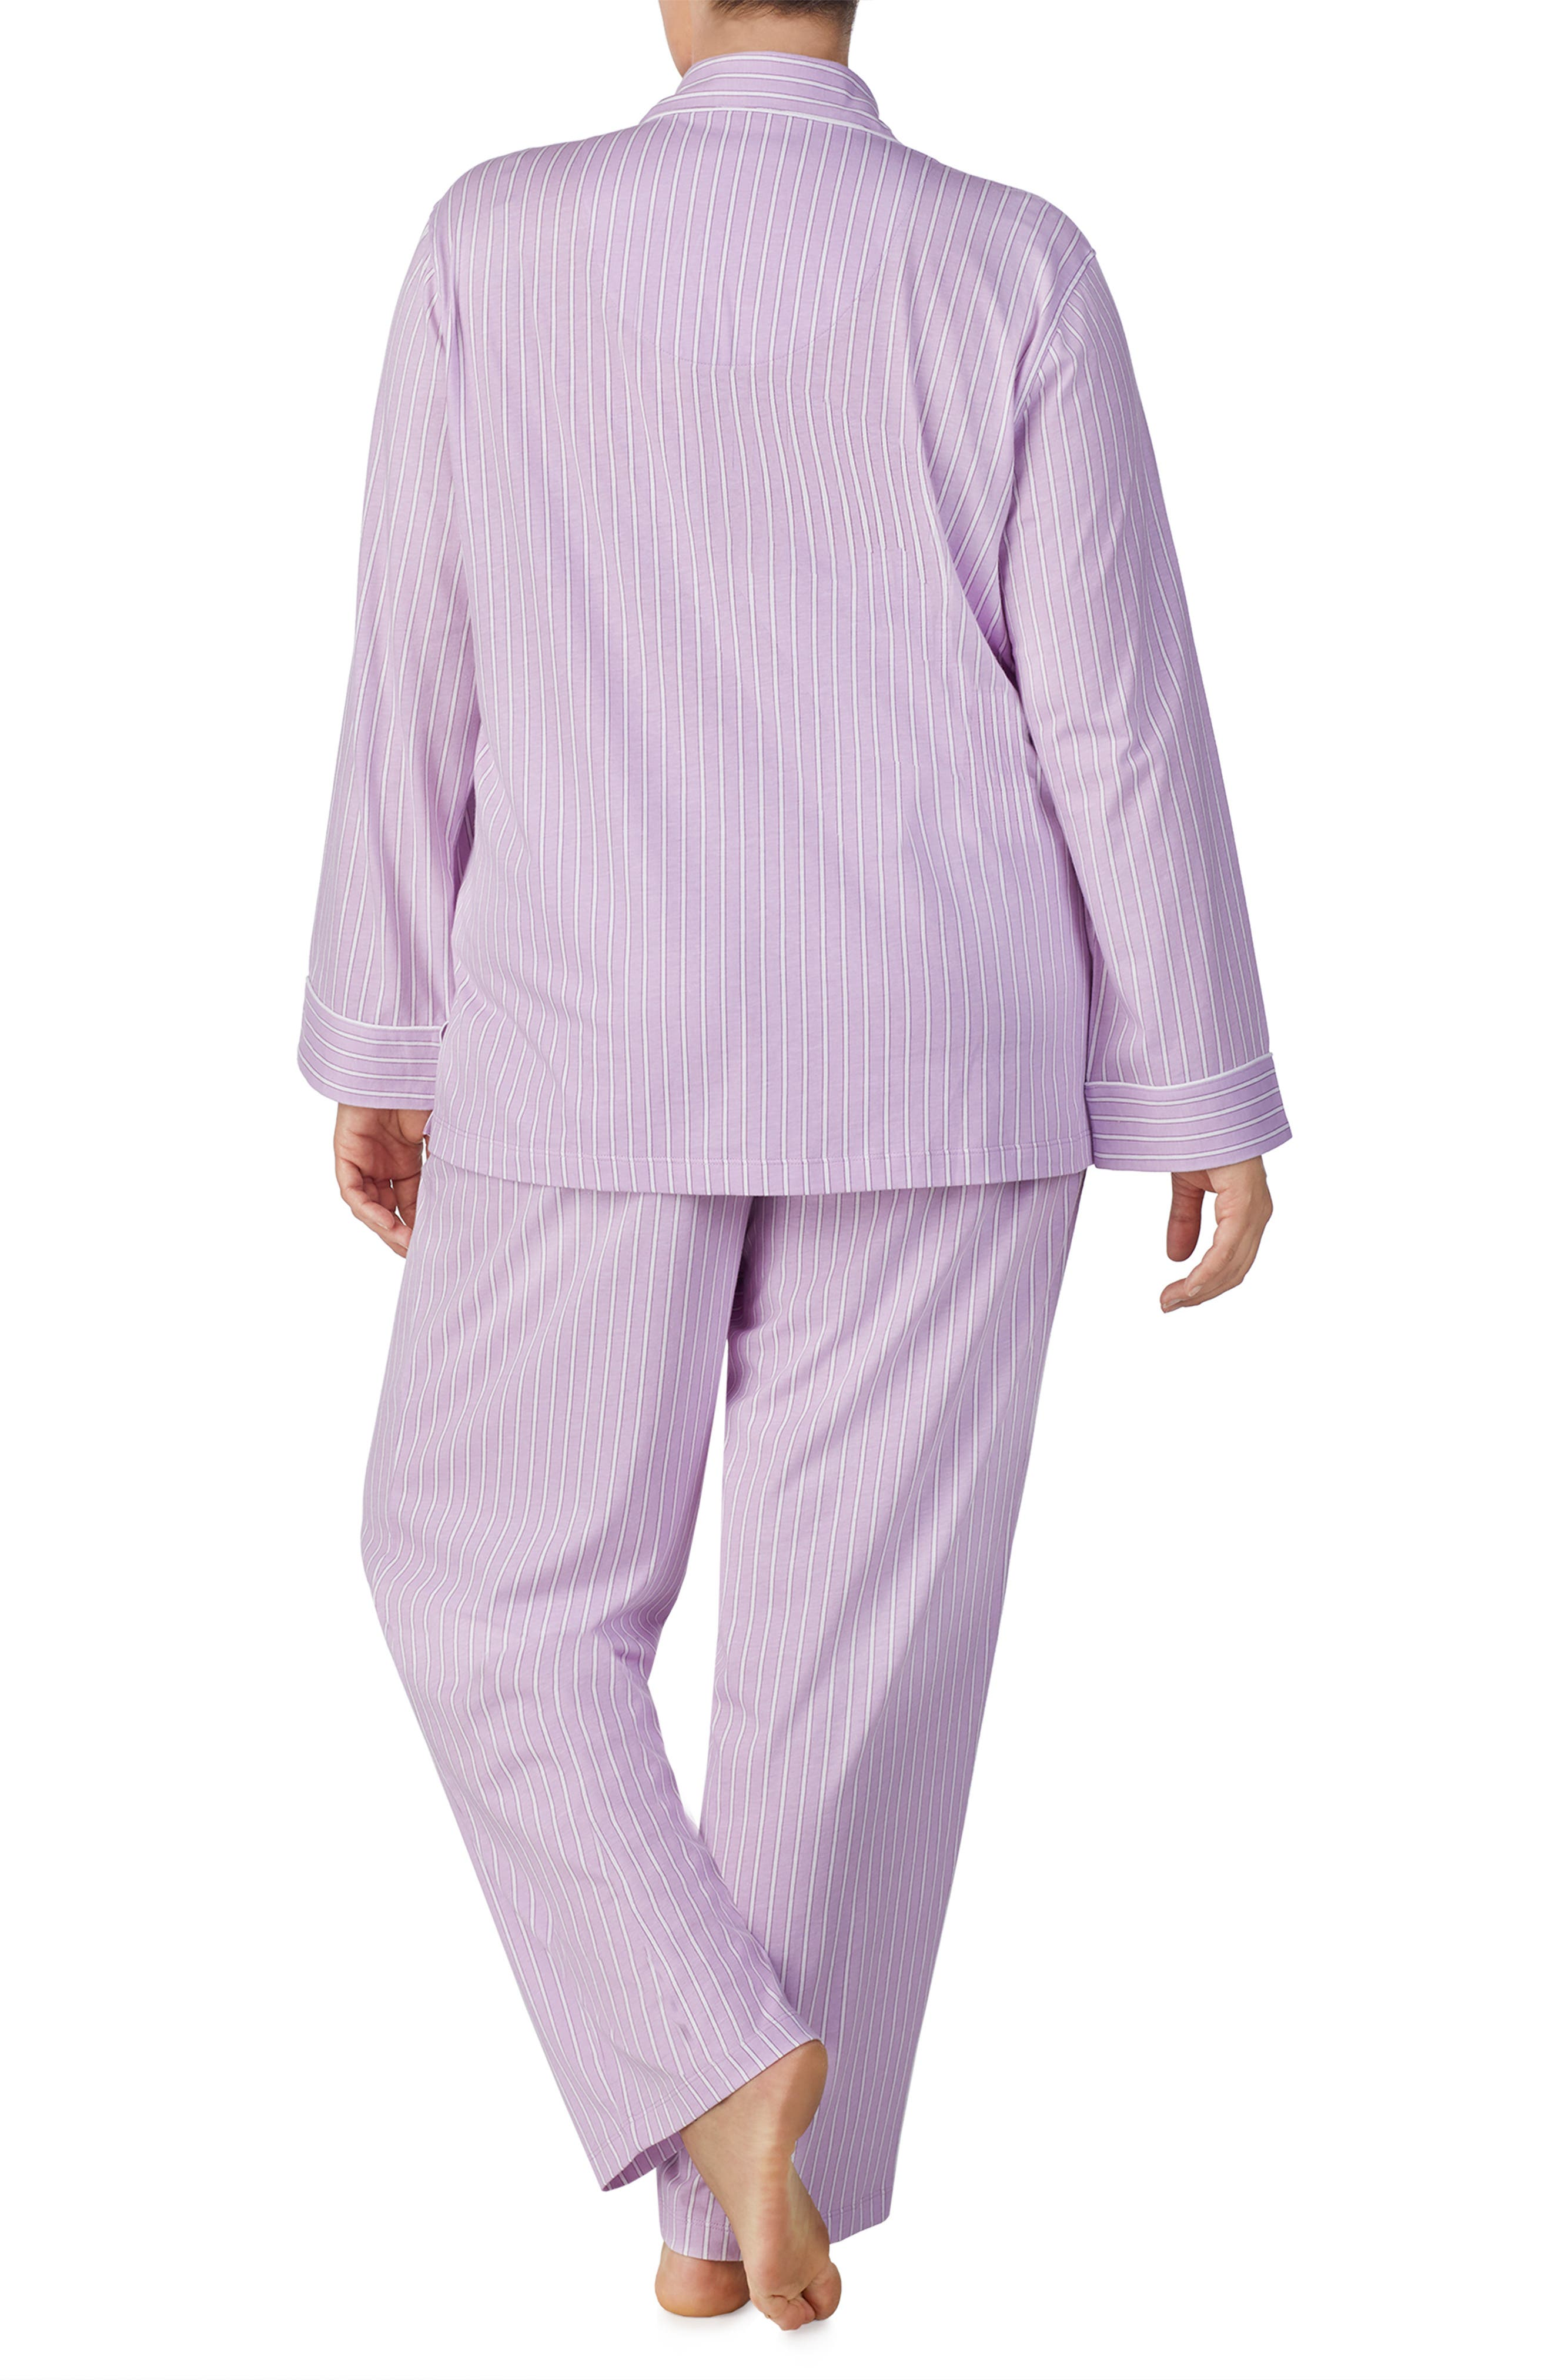 Stripe Pajamas,                             Alternate thumbnail 2, color,                             508